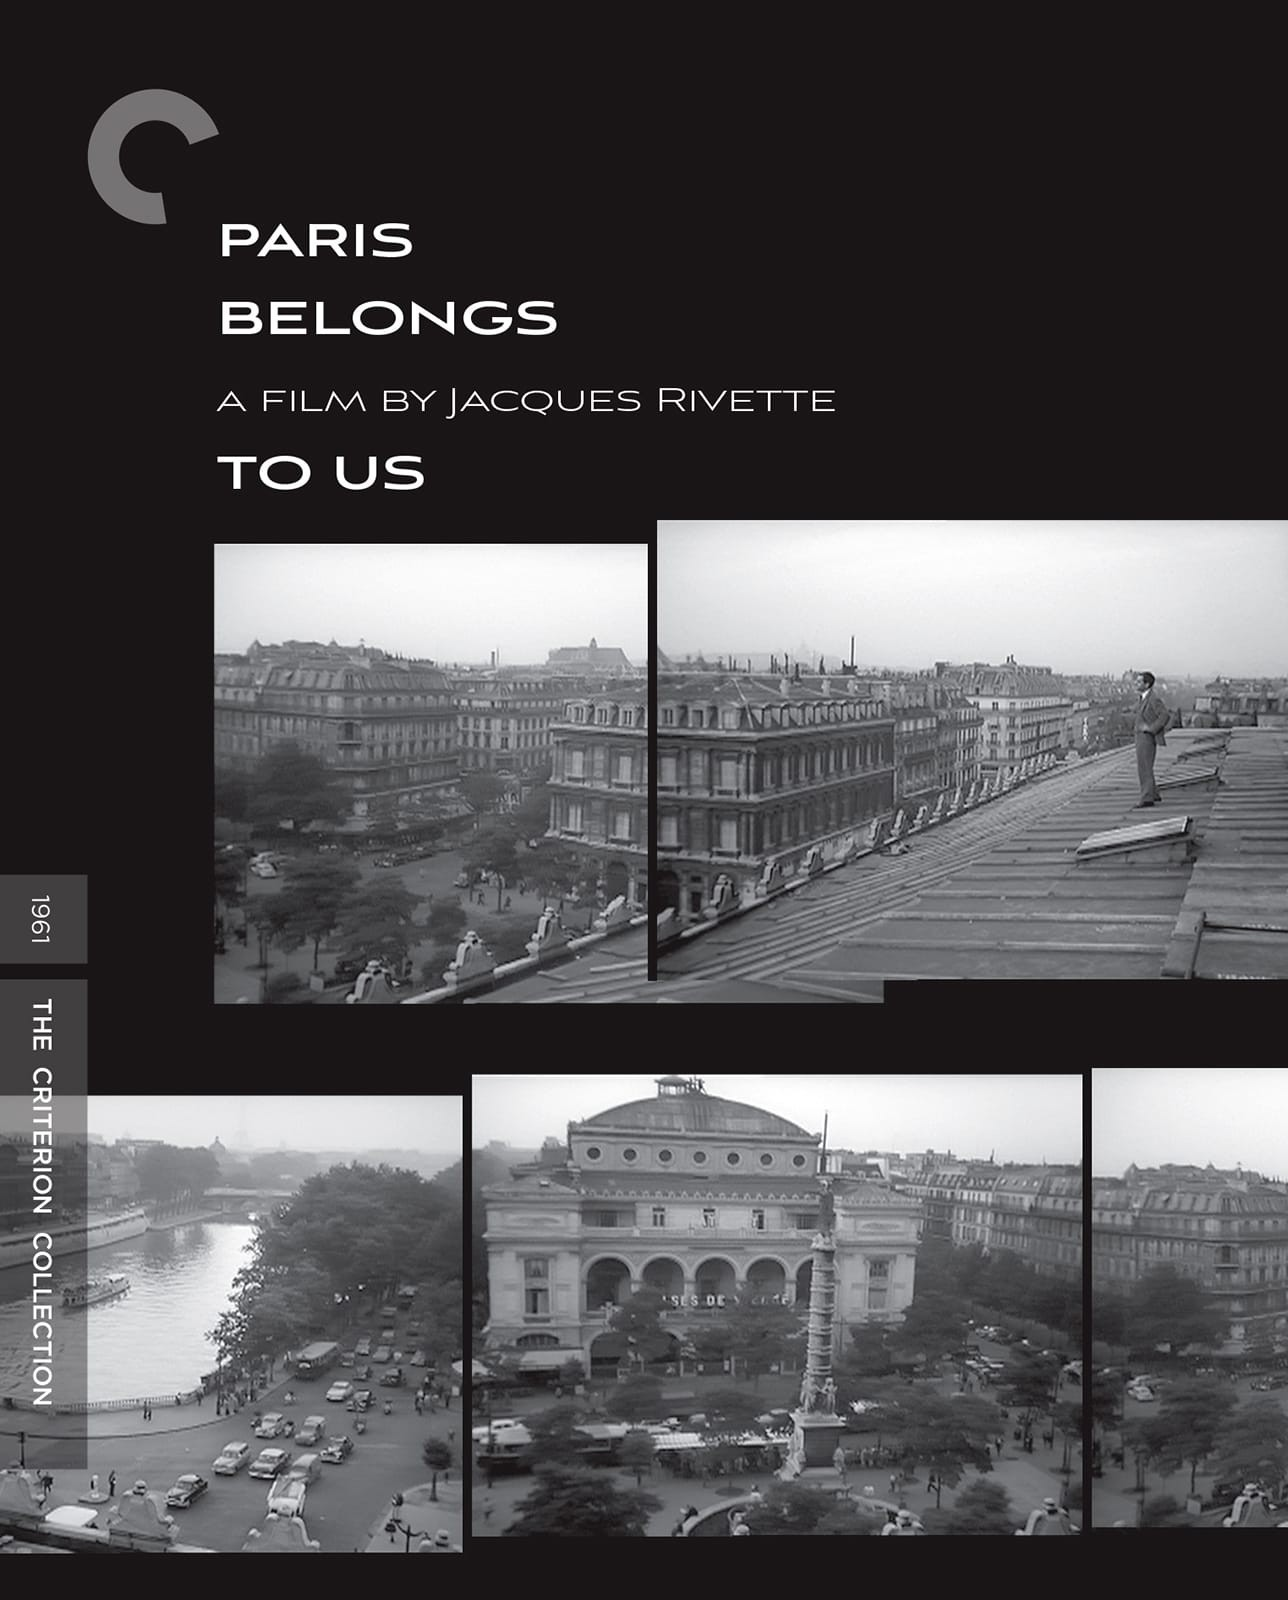 Paris Belongs to Us (1961)(The Criterion Collection) Blu-ray